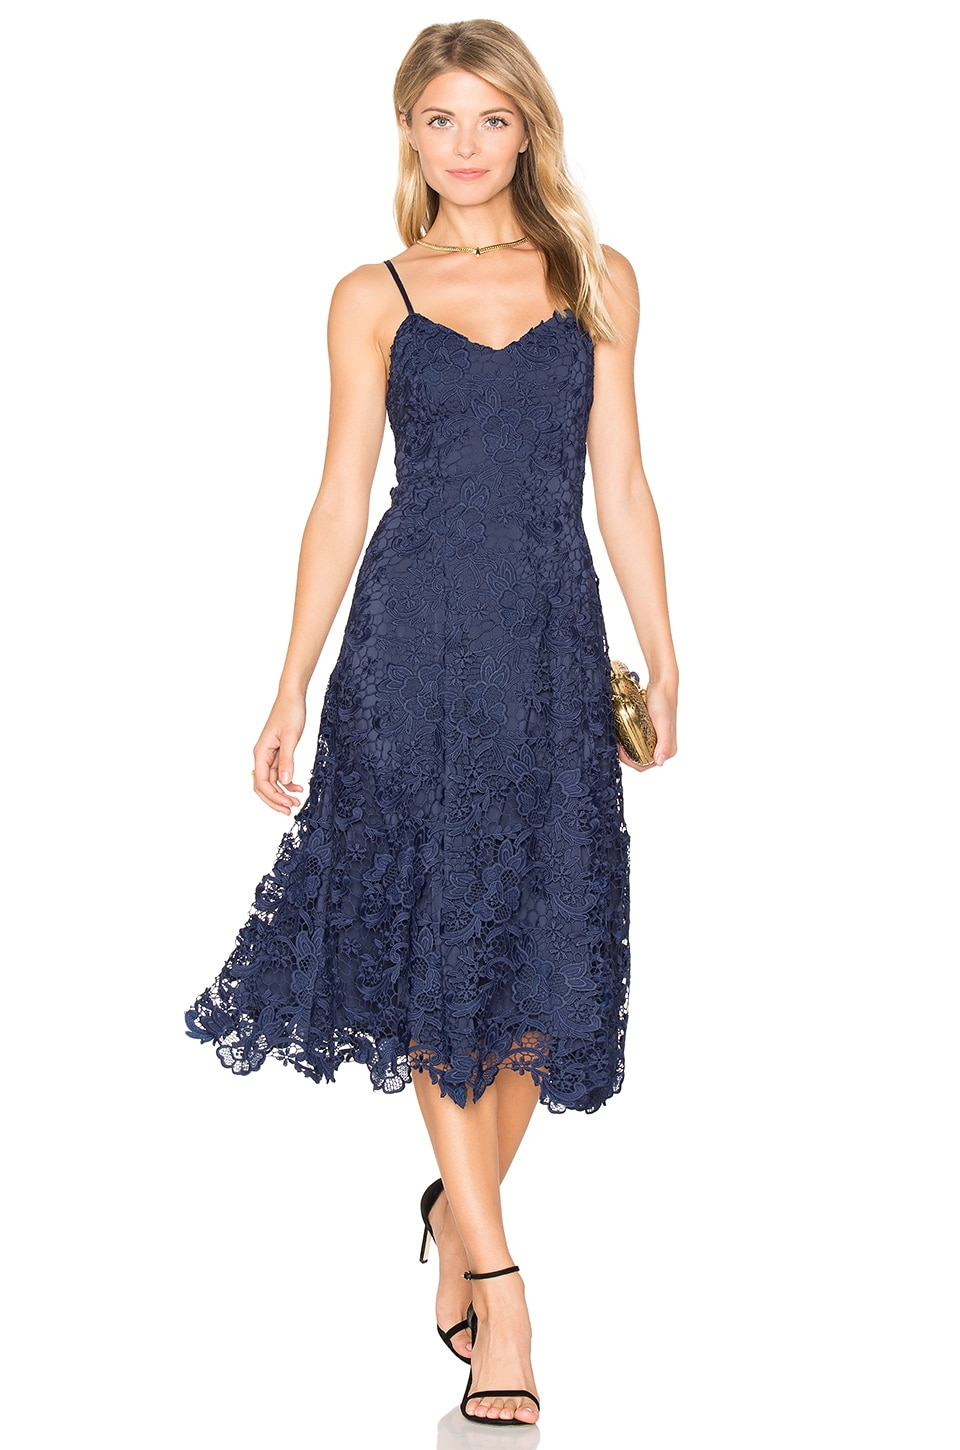 Naomi Flare Dress by Alice + Olivia